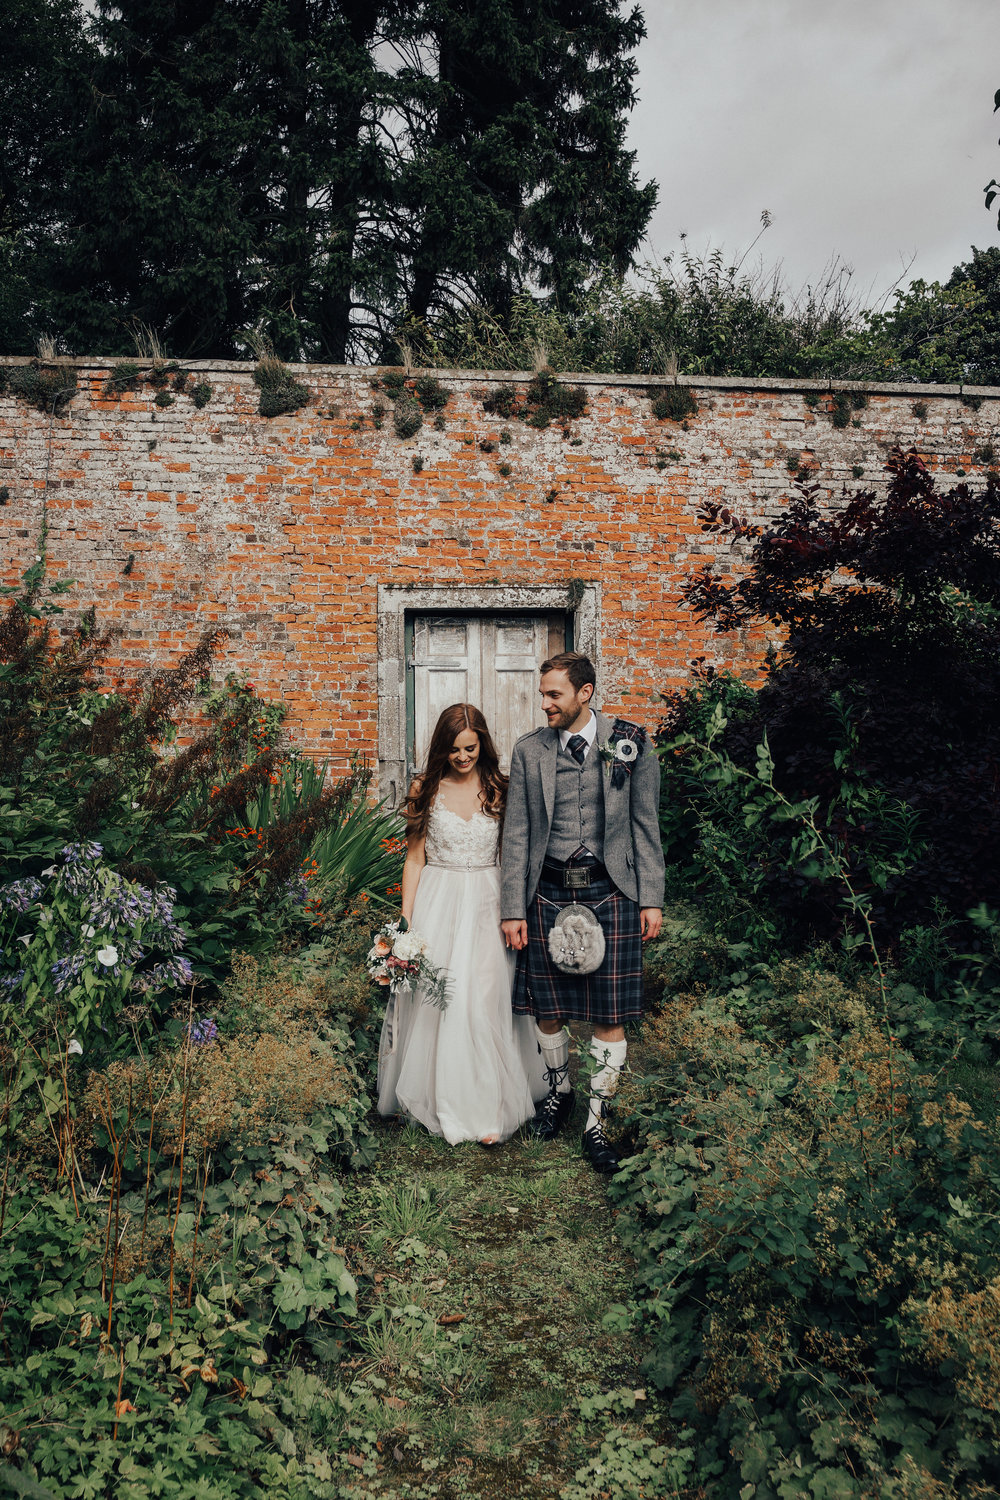 BYRE_AT_INCHYRA_WEDDING_PHOTOGRAPHER_PJ_PHILLIPS_PHOTOGRAPHY_KAYLEIGH_ANDREW_112.jpg